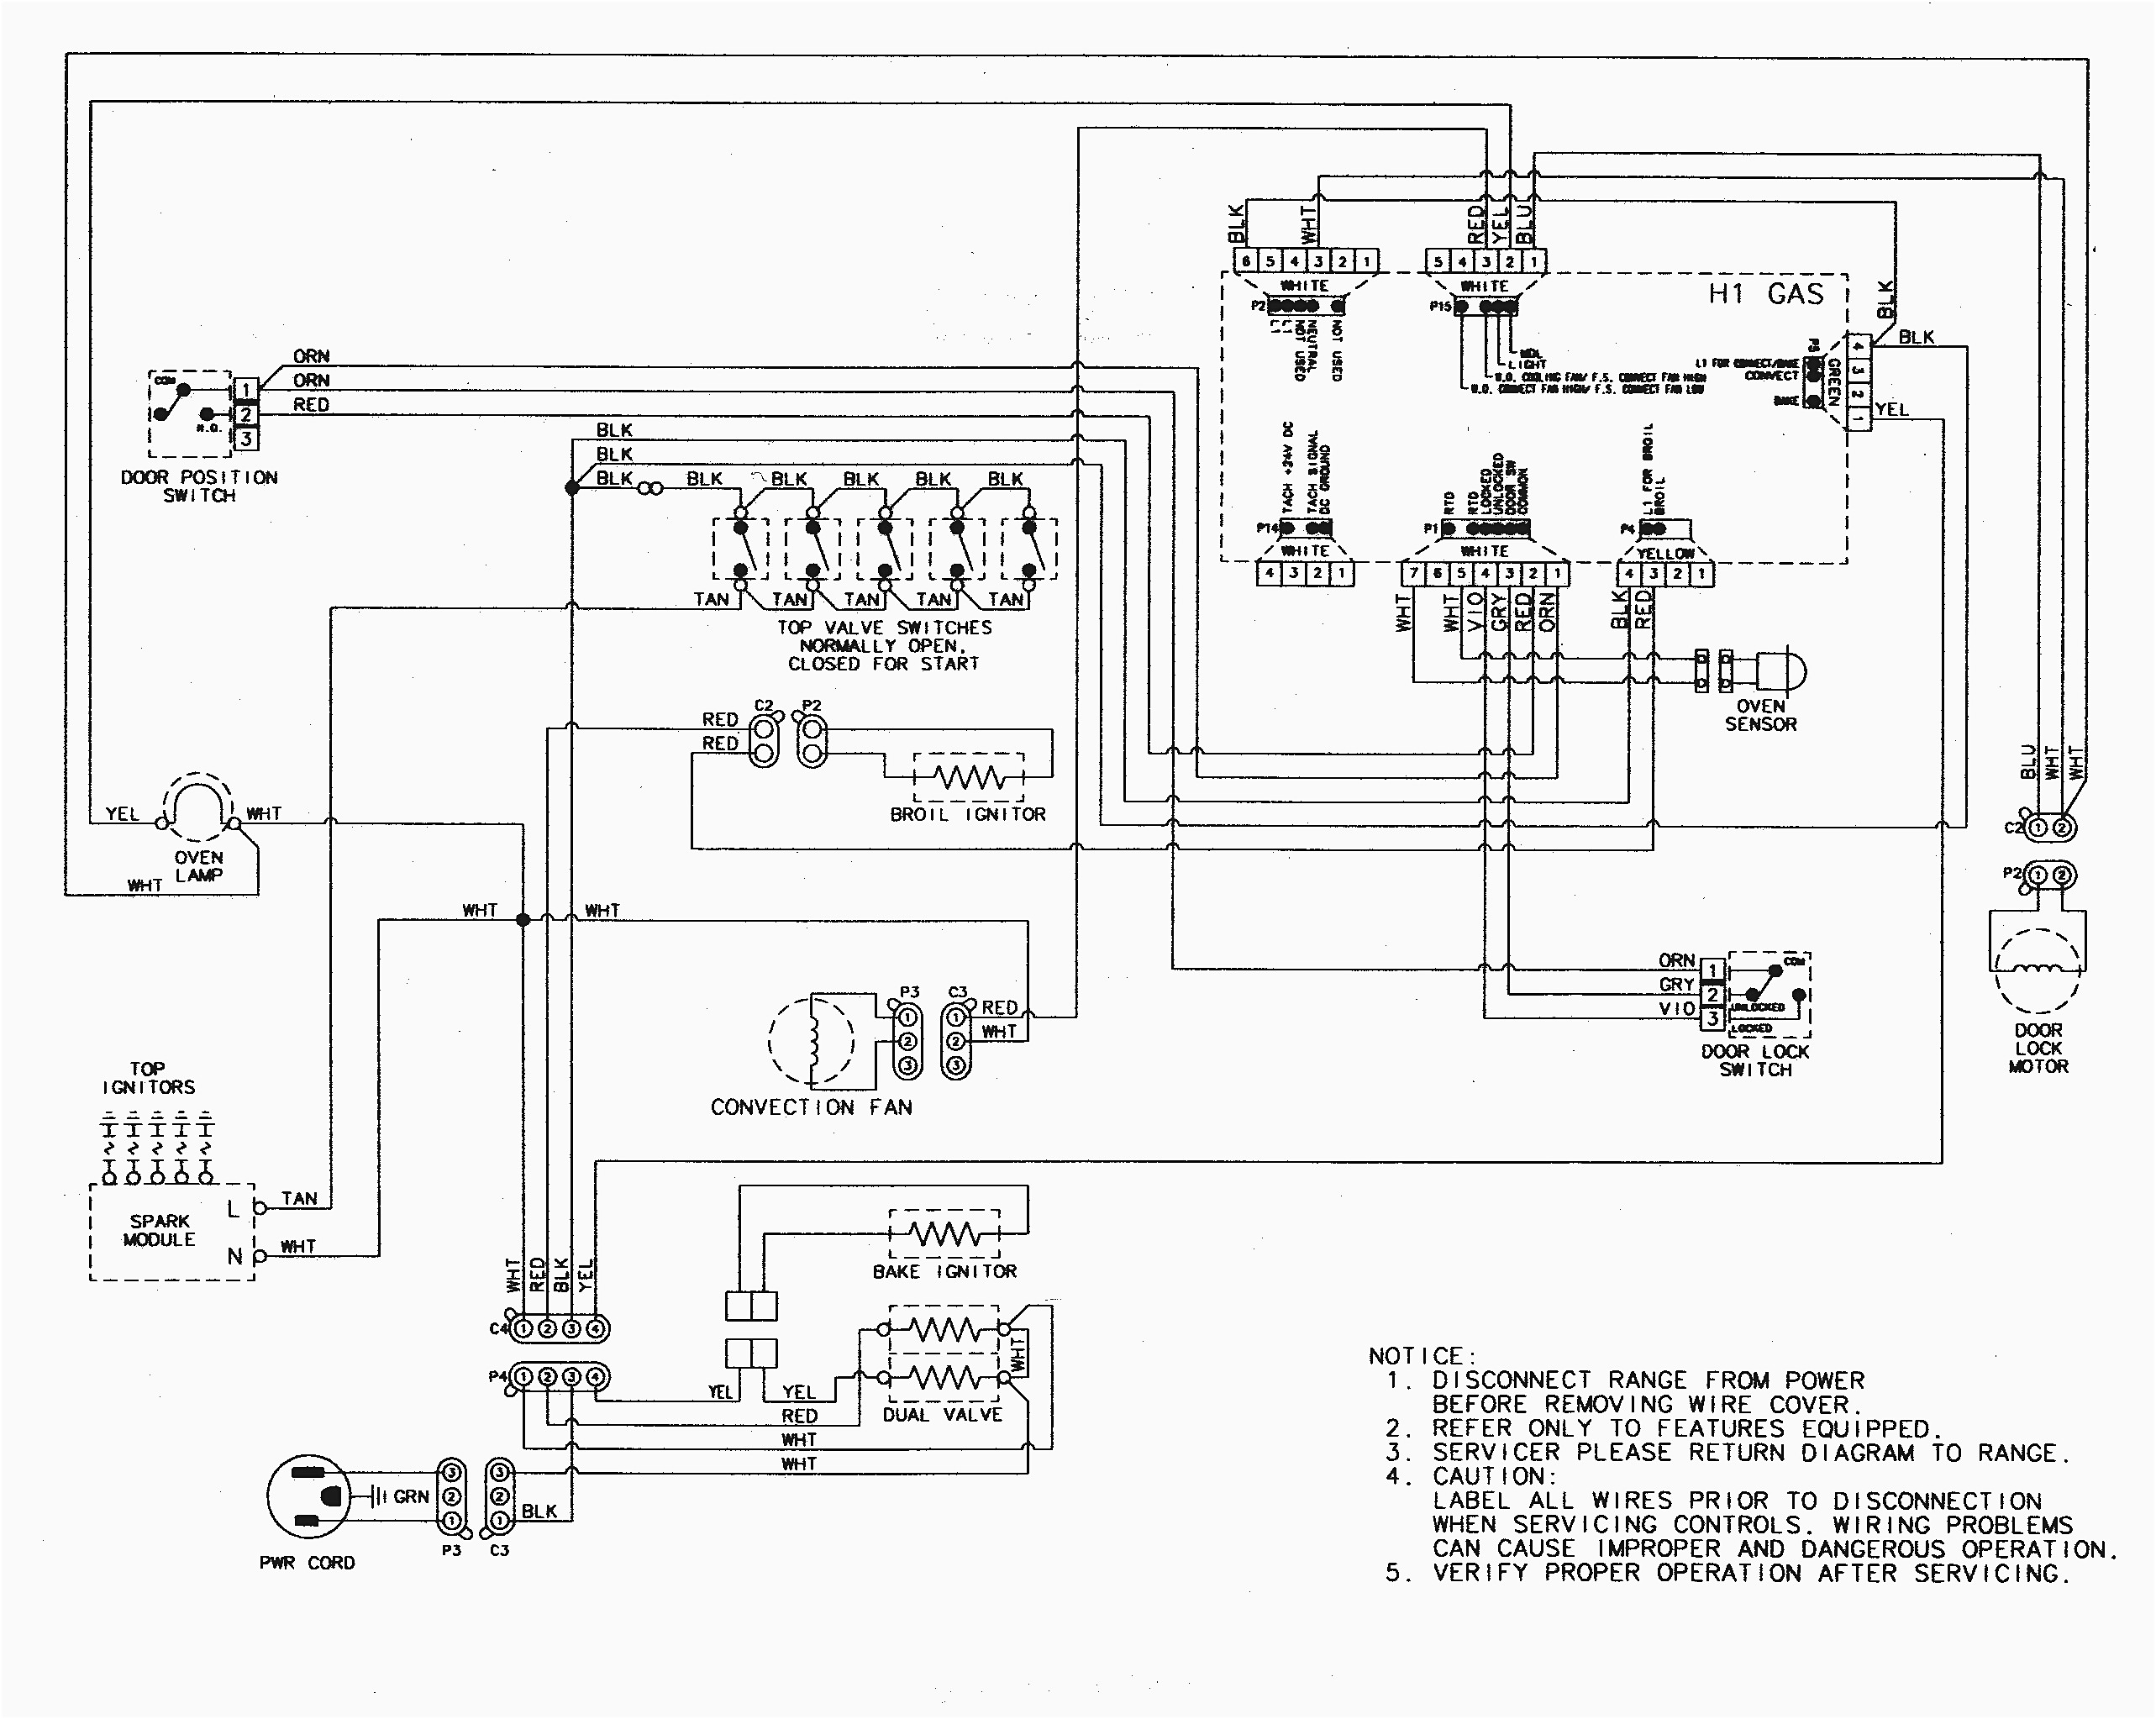 blodgett ef 111 wiring diagram collection